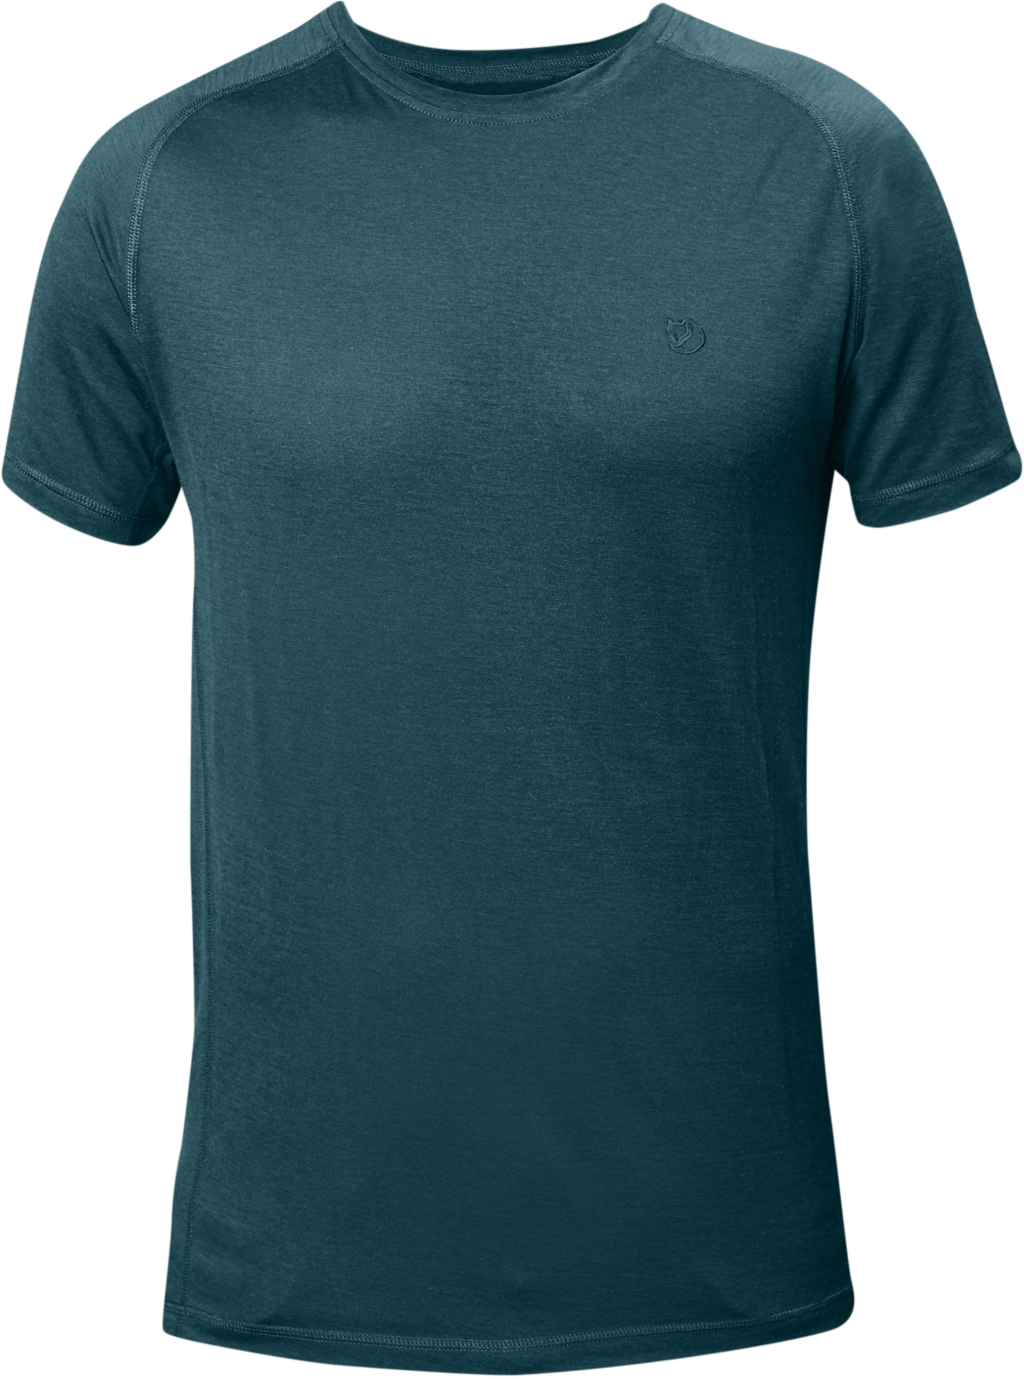 FjallRaven Abisko Trail T-shirt Glacier Green-30